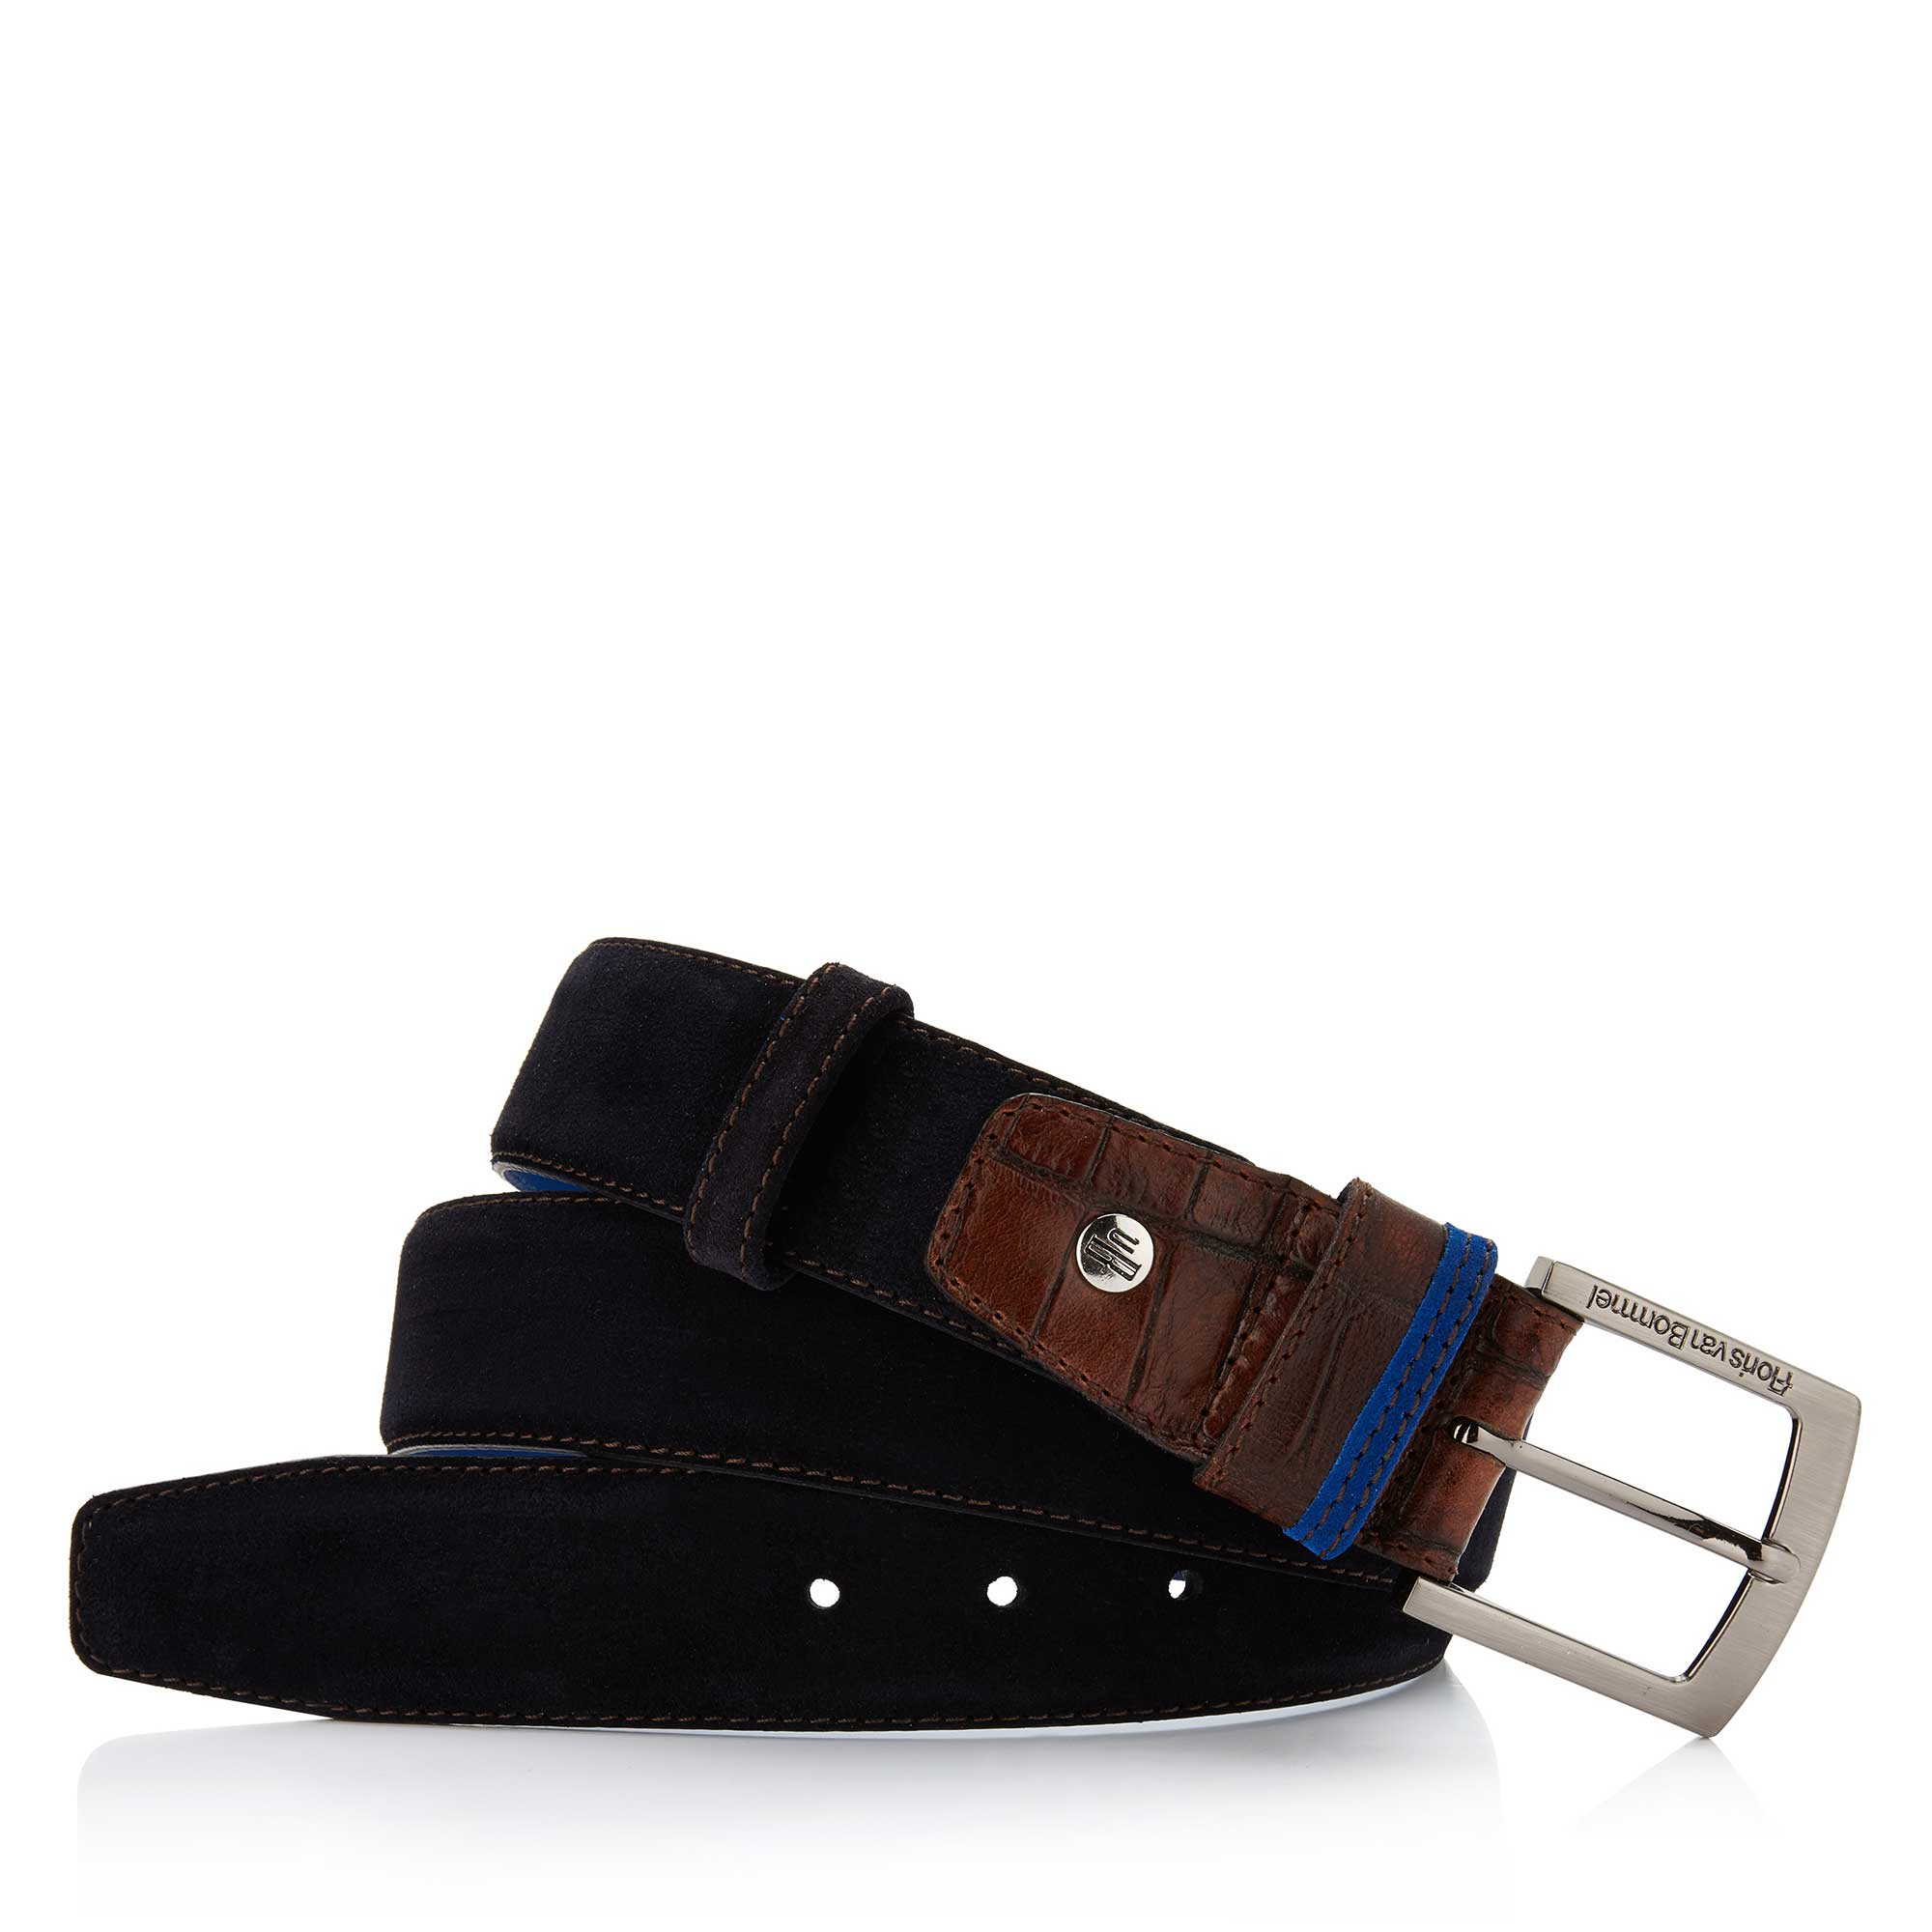 75004/06 - Floris van Bommel dark blue suede men's belt